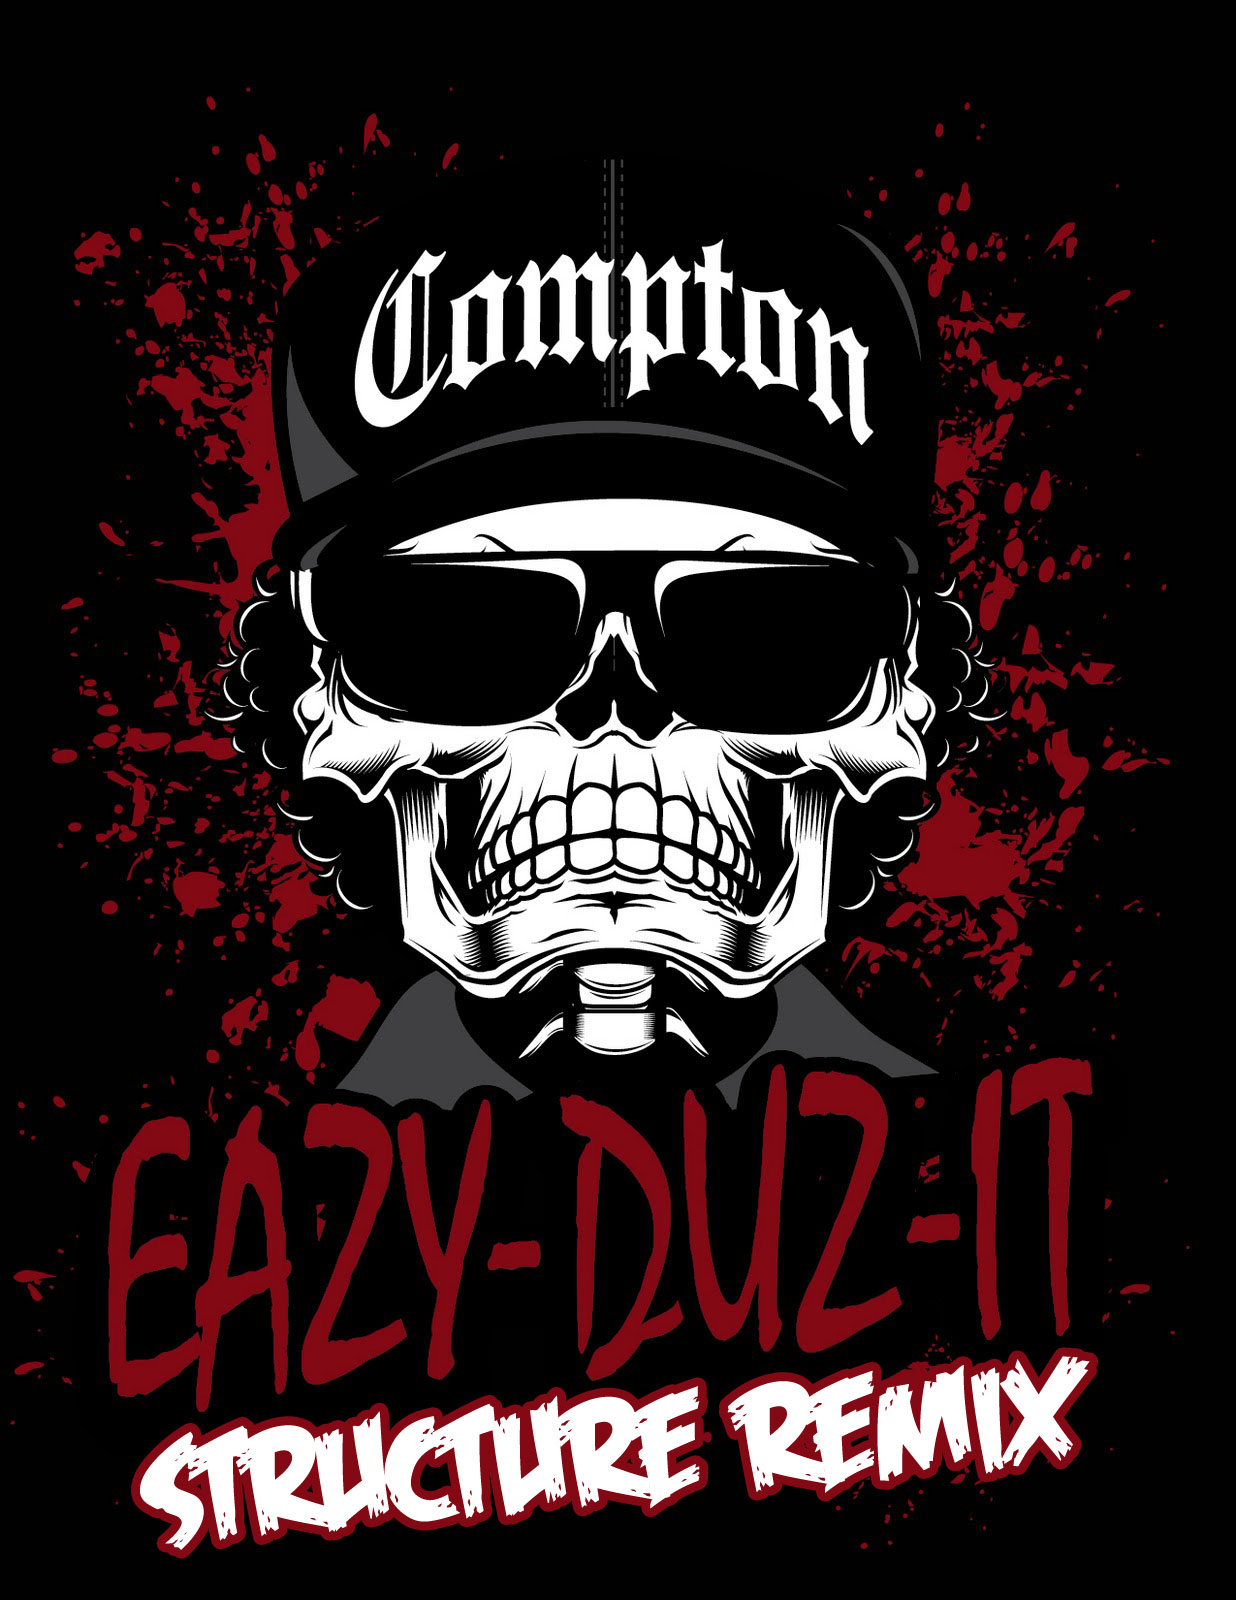 Eazy E - Eazy Duz It (Structure Rmx)